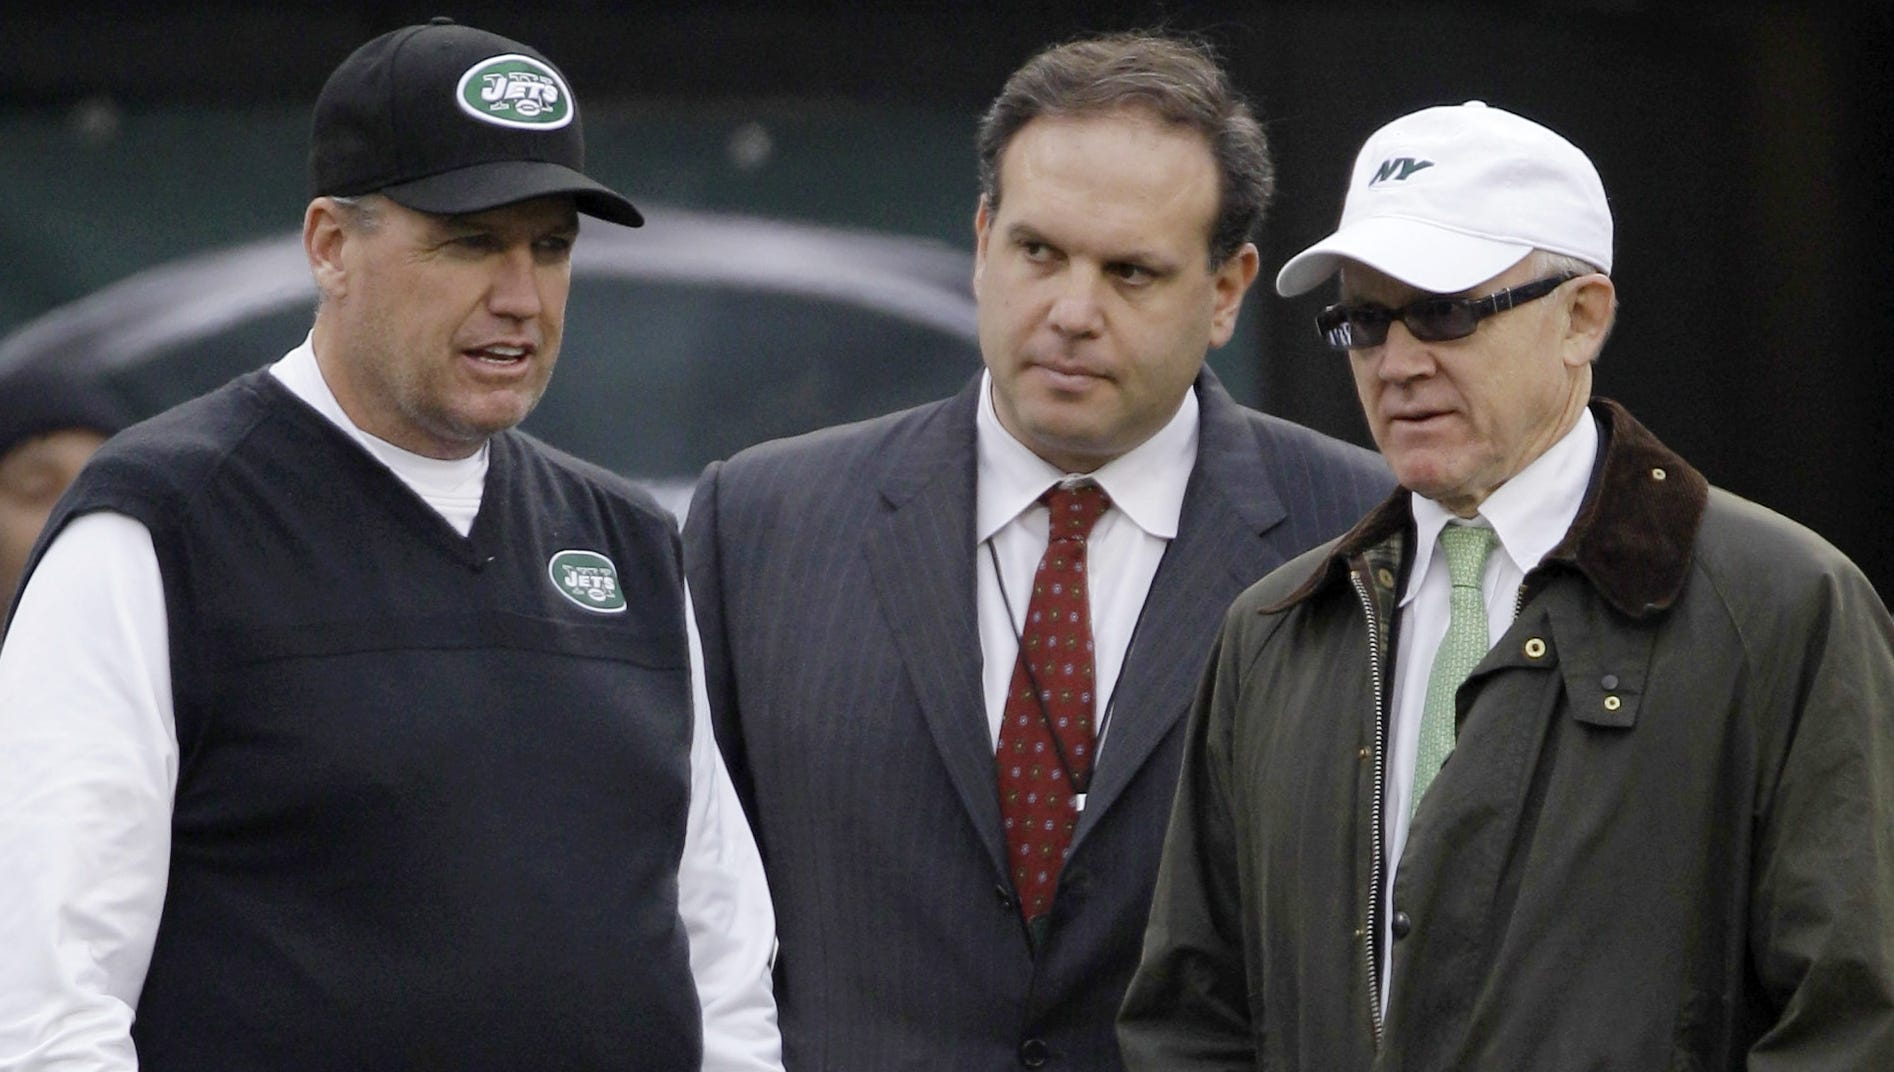 Image result for Jets GM Mike Tannenbaum""